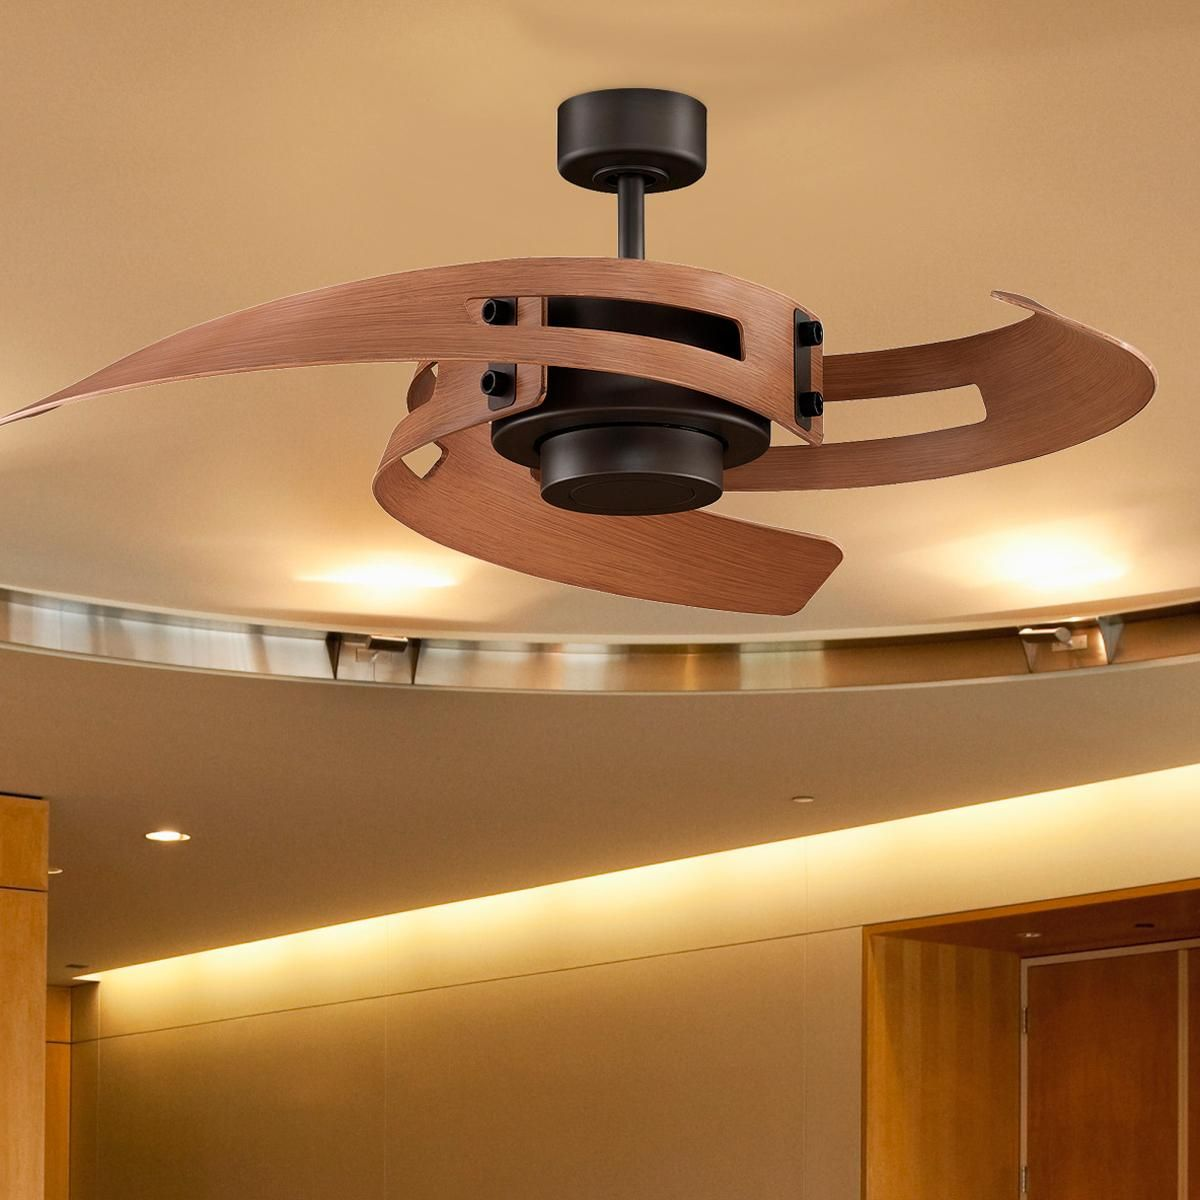 Curved Blades Ceiling Fan